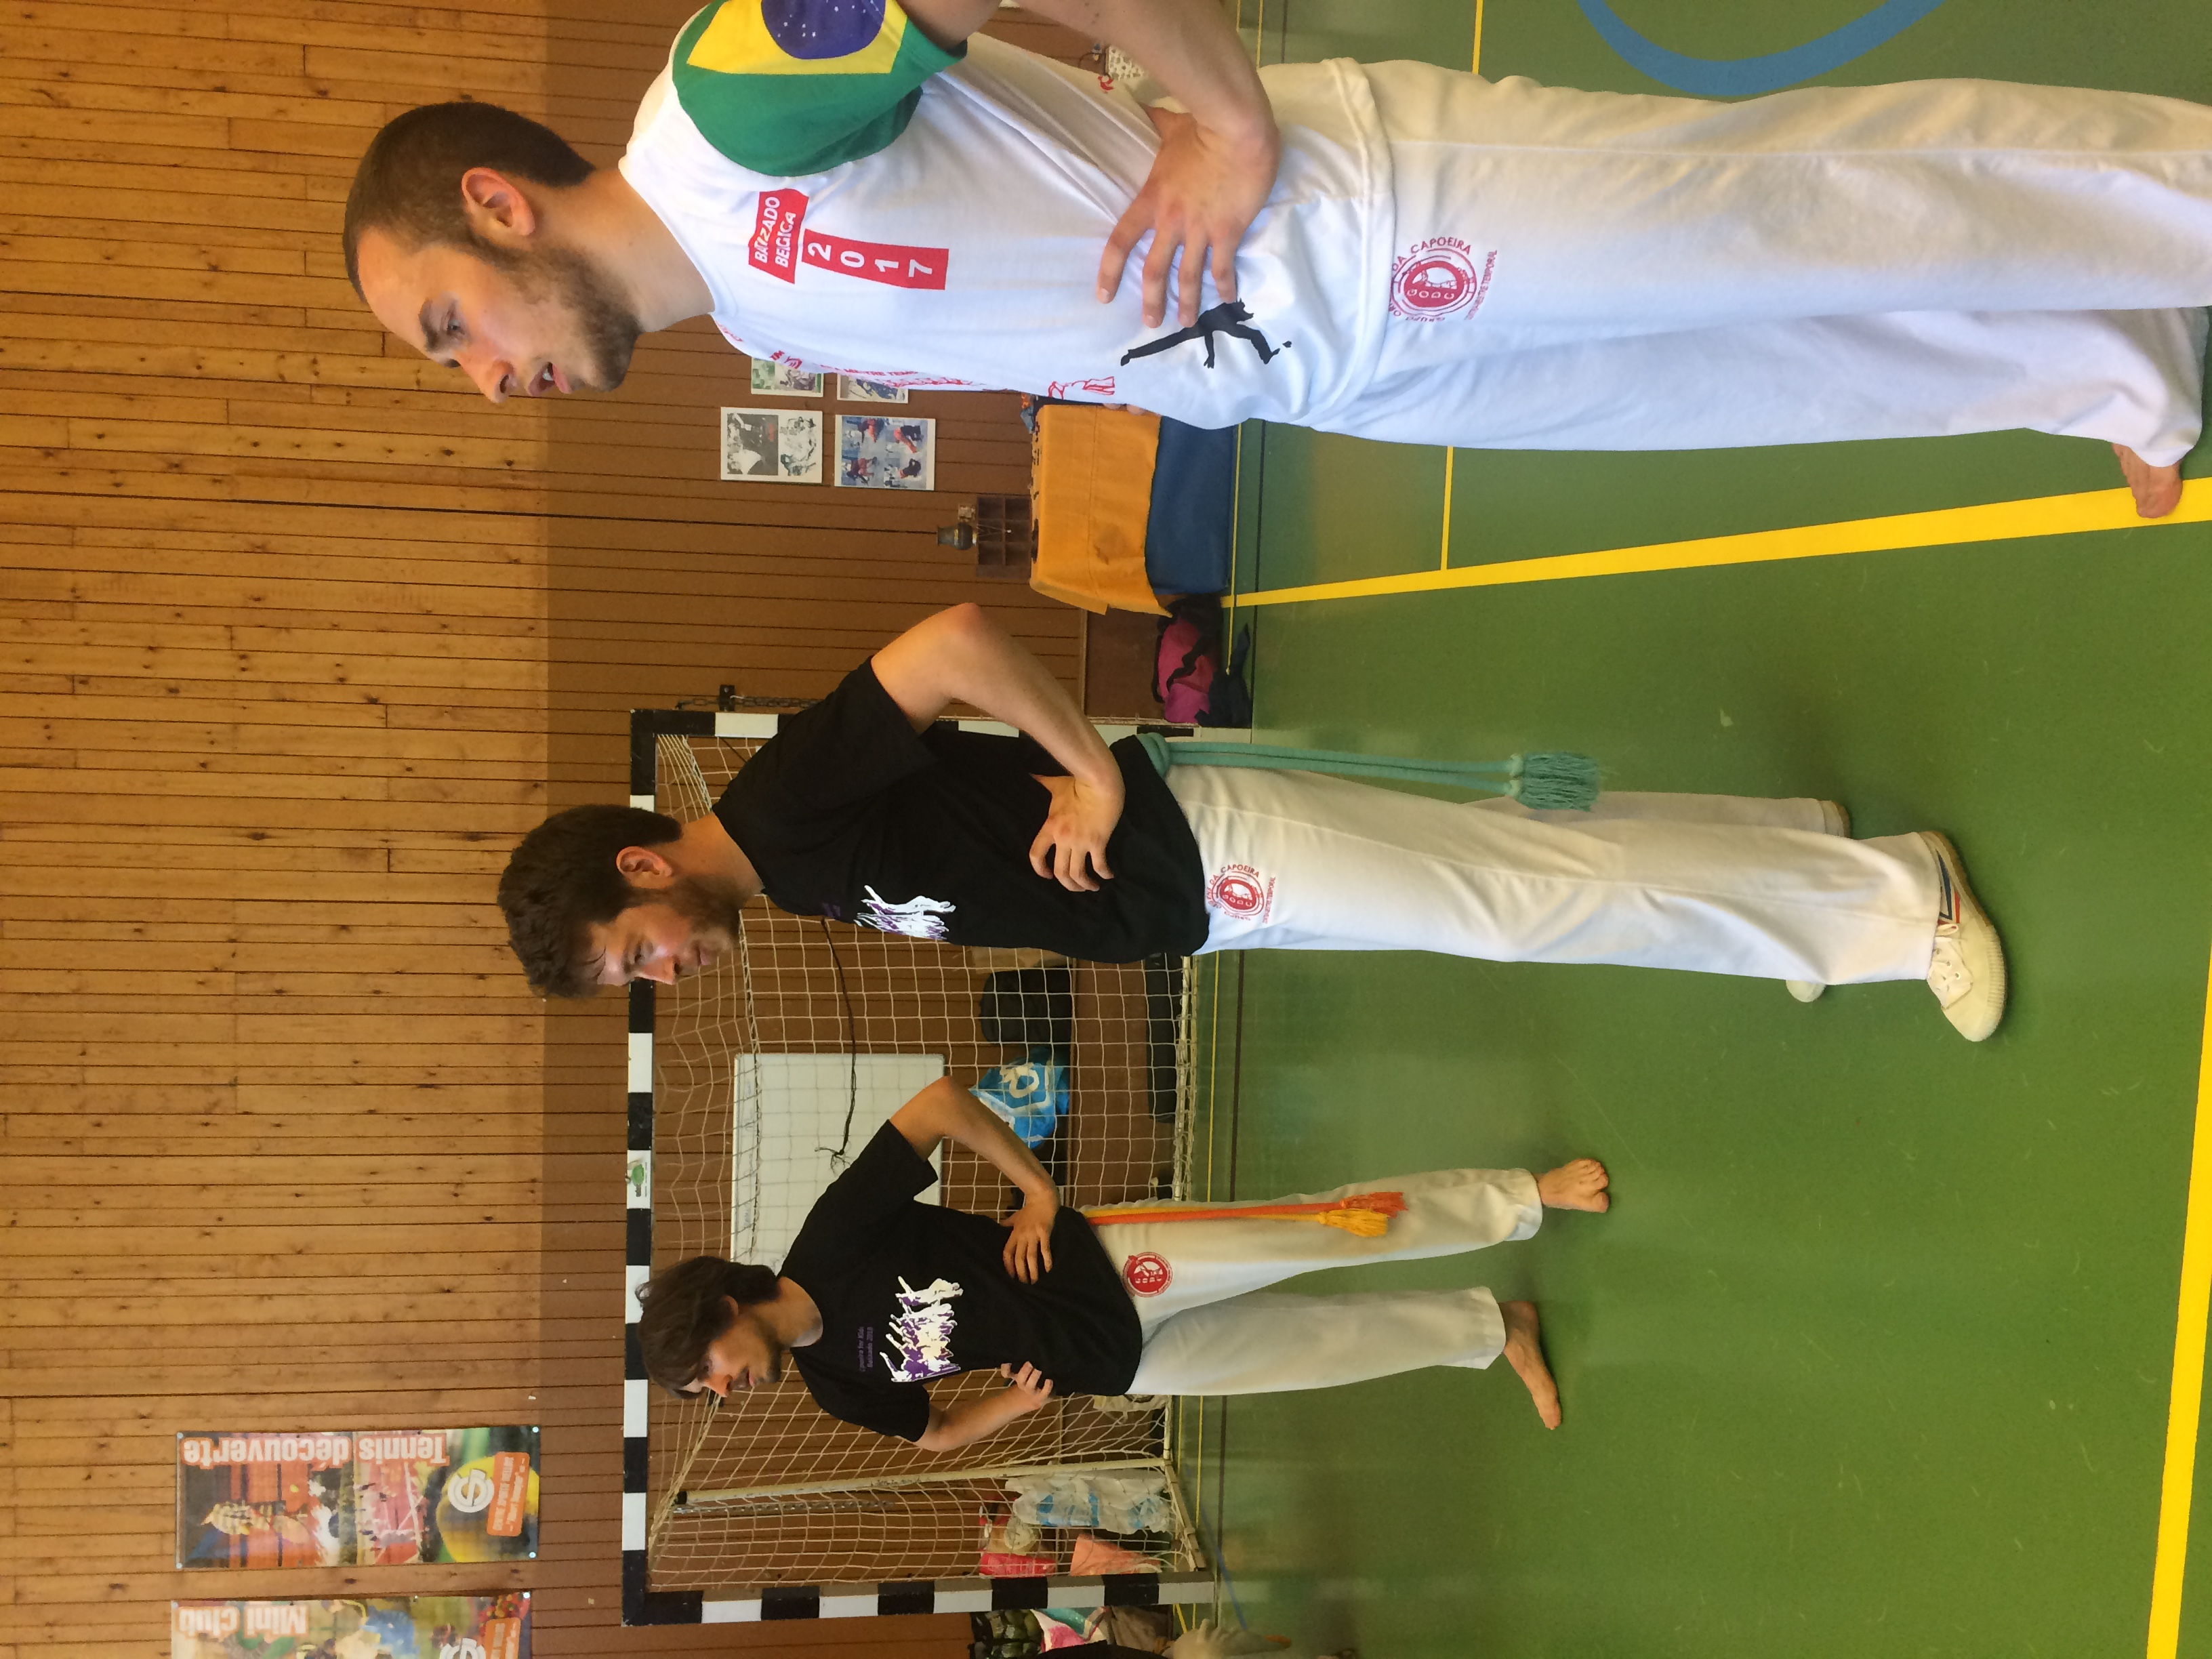 Batizado for kids 2018